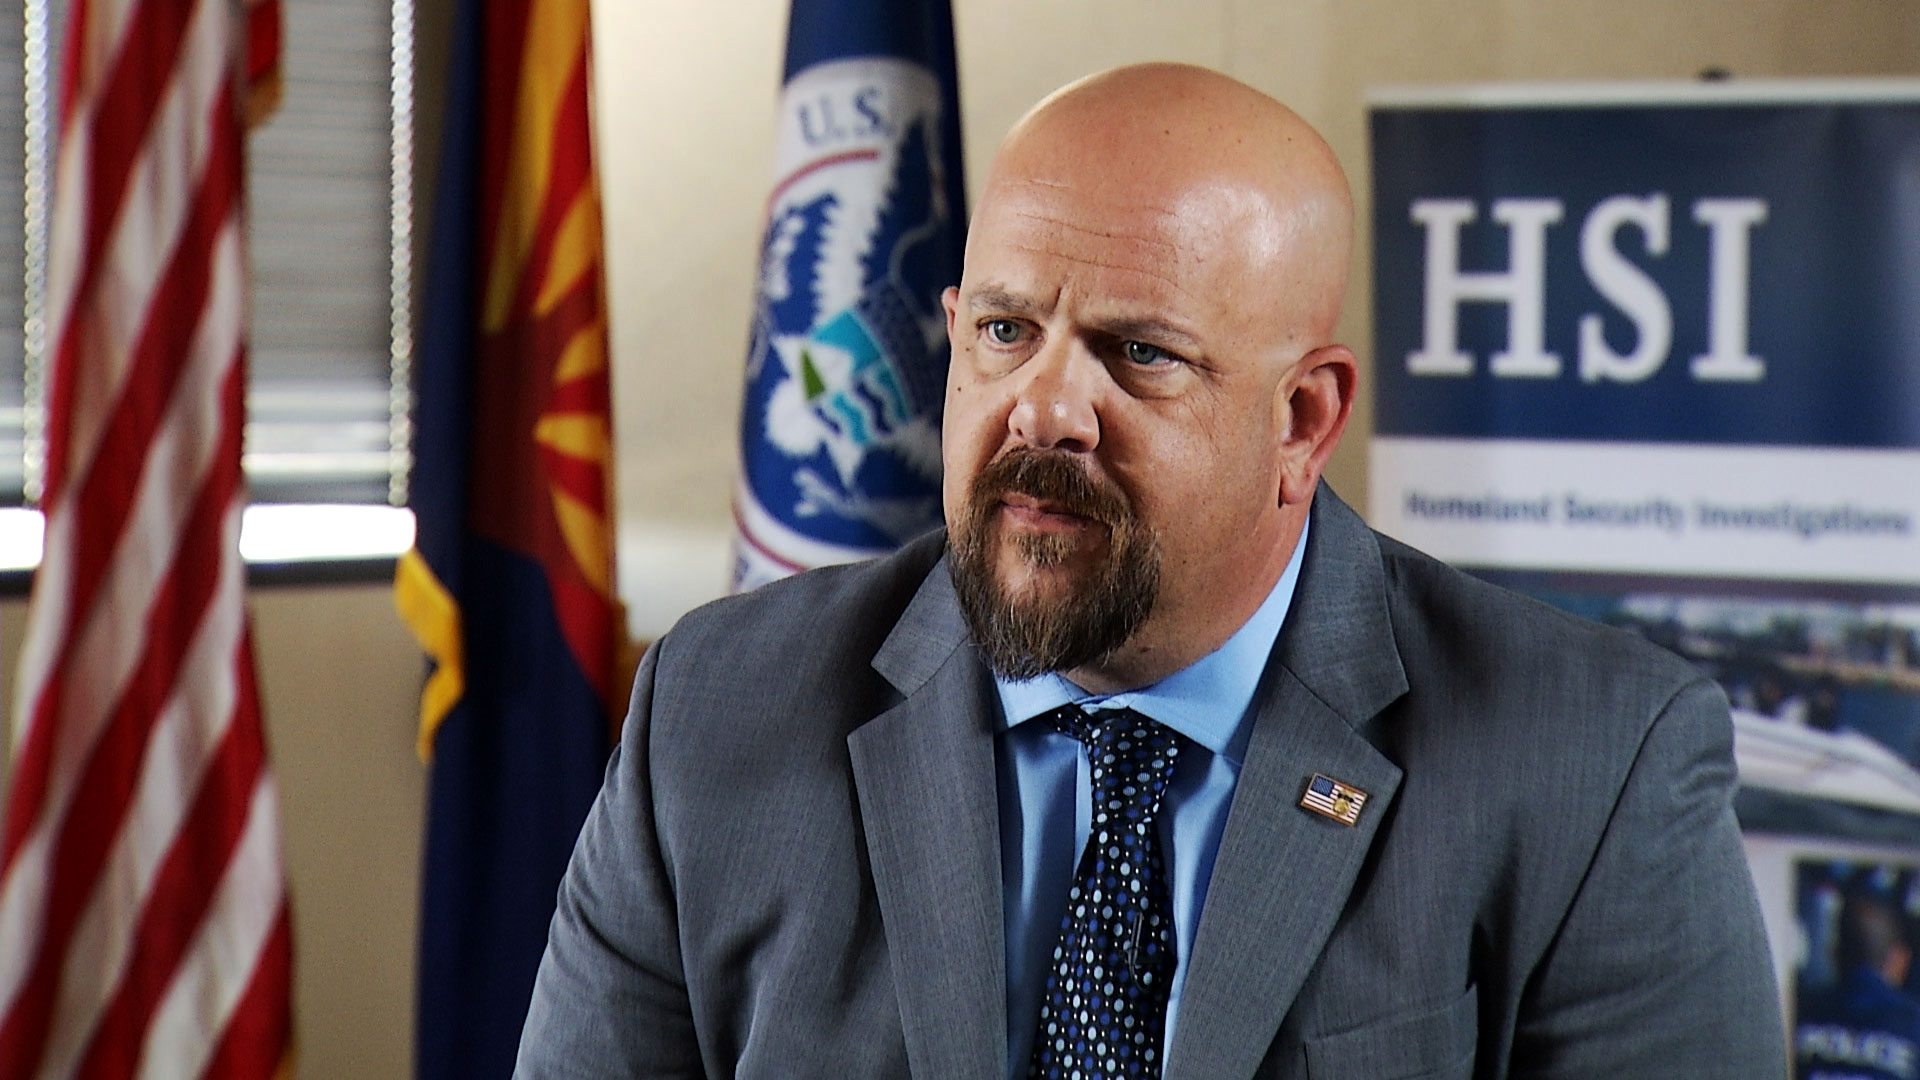 Scott Brown, Special Agent in Charge of Homeland Security Investigations in Arizona, sits for an interview with Arizona 360 at Immigration and Customs Enforcement headquarters in Phoenix on June 17, 2019.